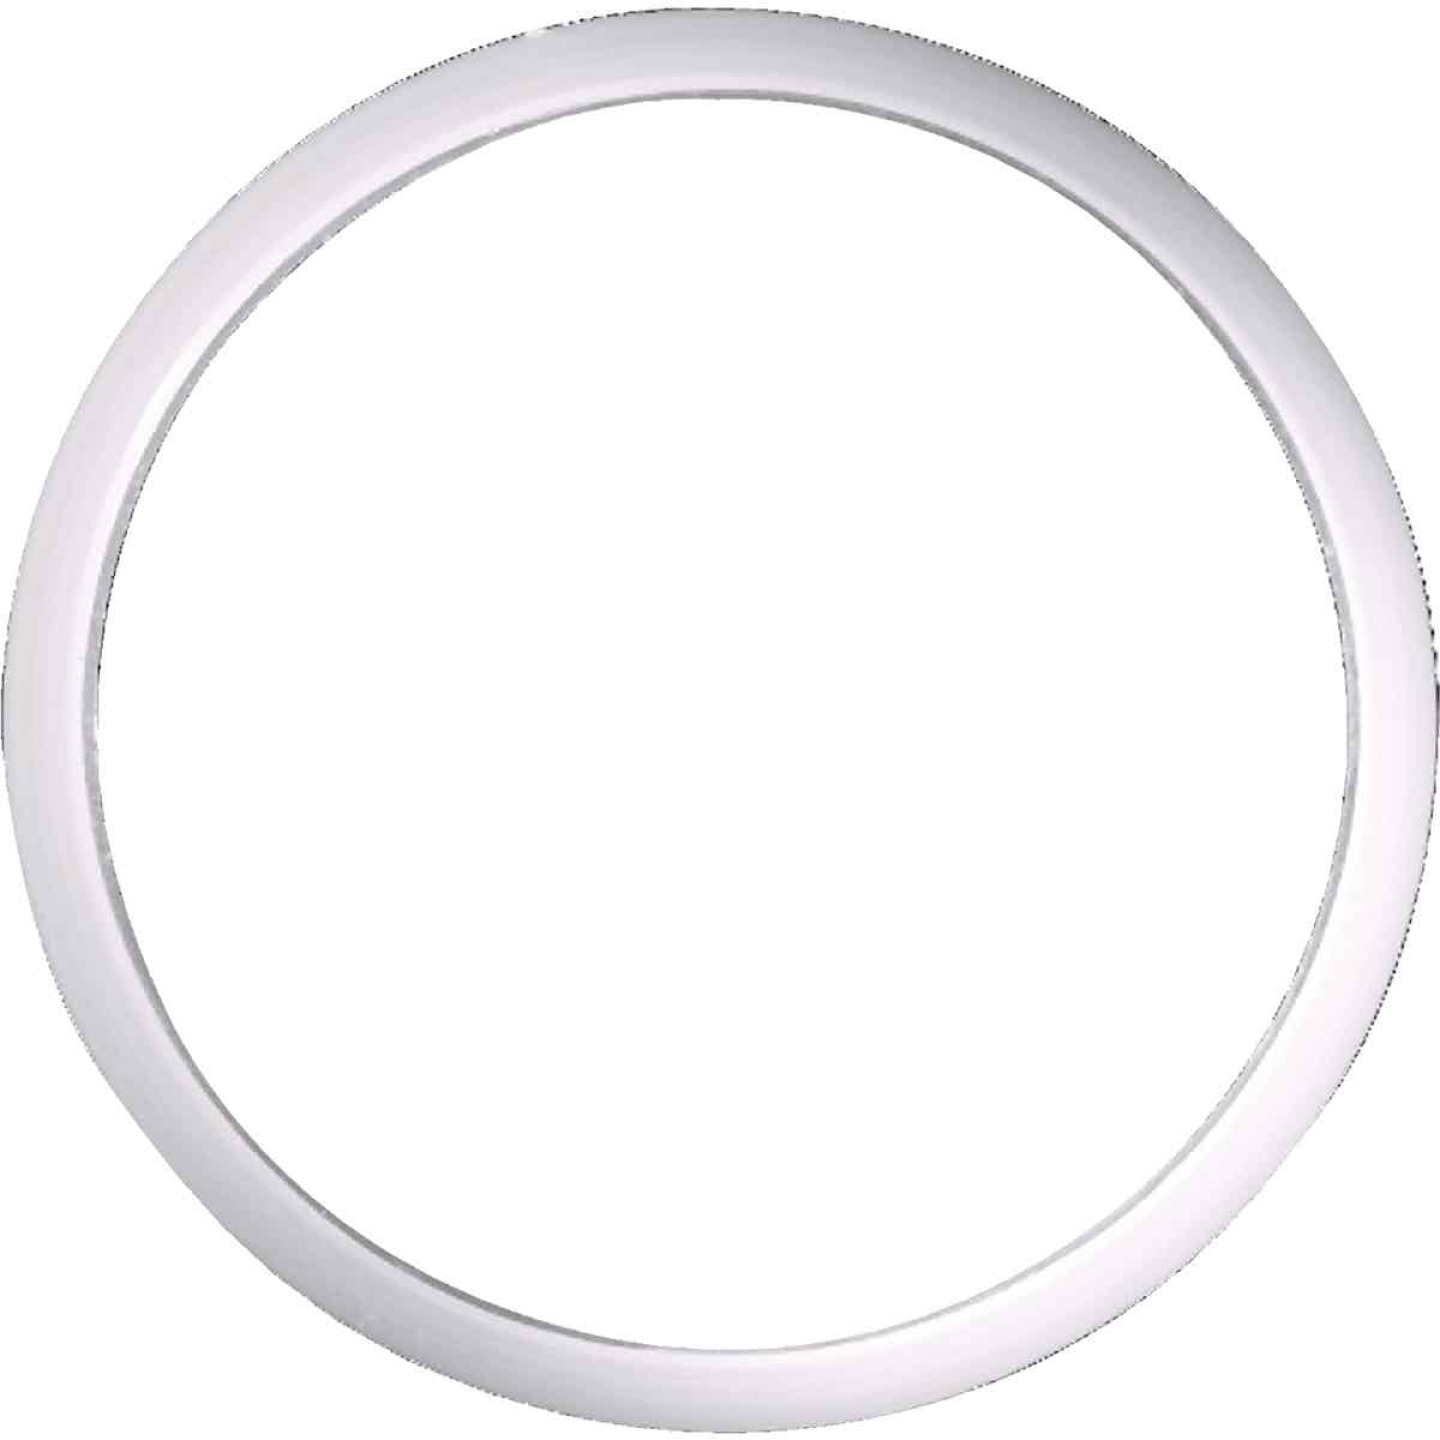 Danco 1-1/2 In. x 1-3/4 In. Clear/White Polyethylene Slip Joint Washer Image 1